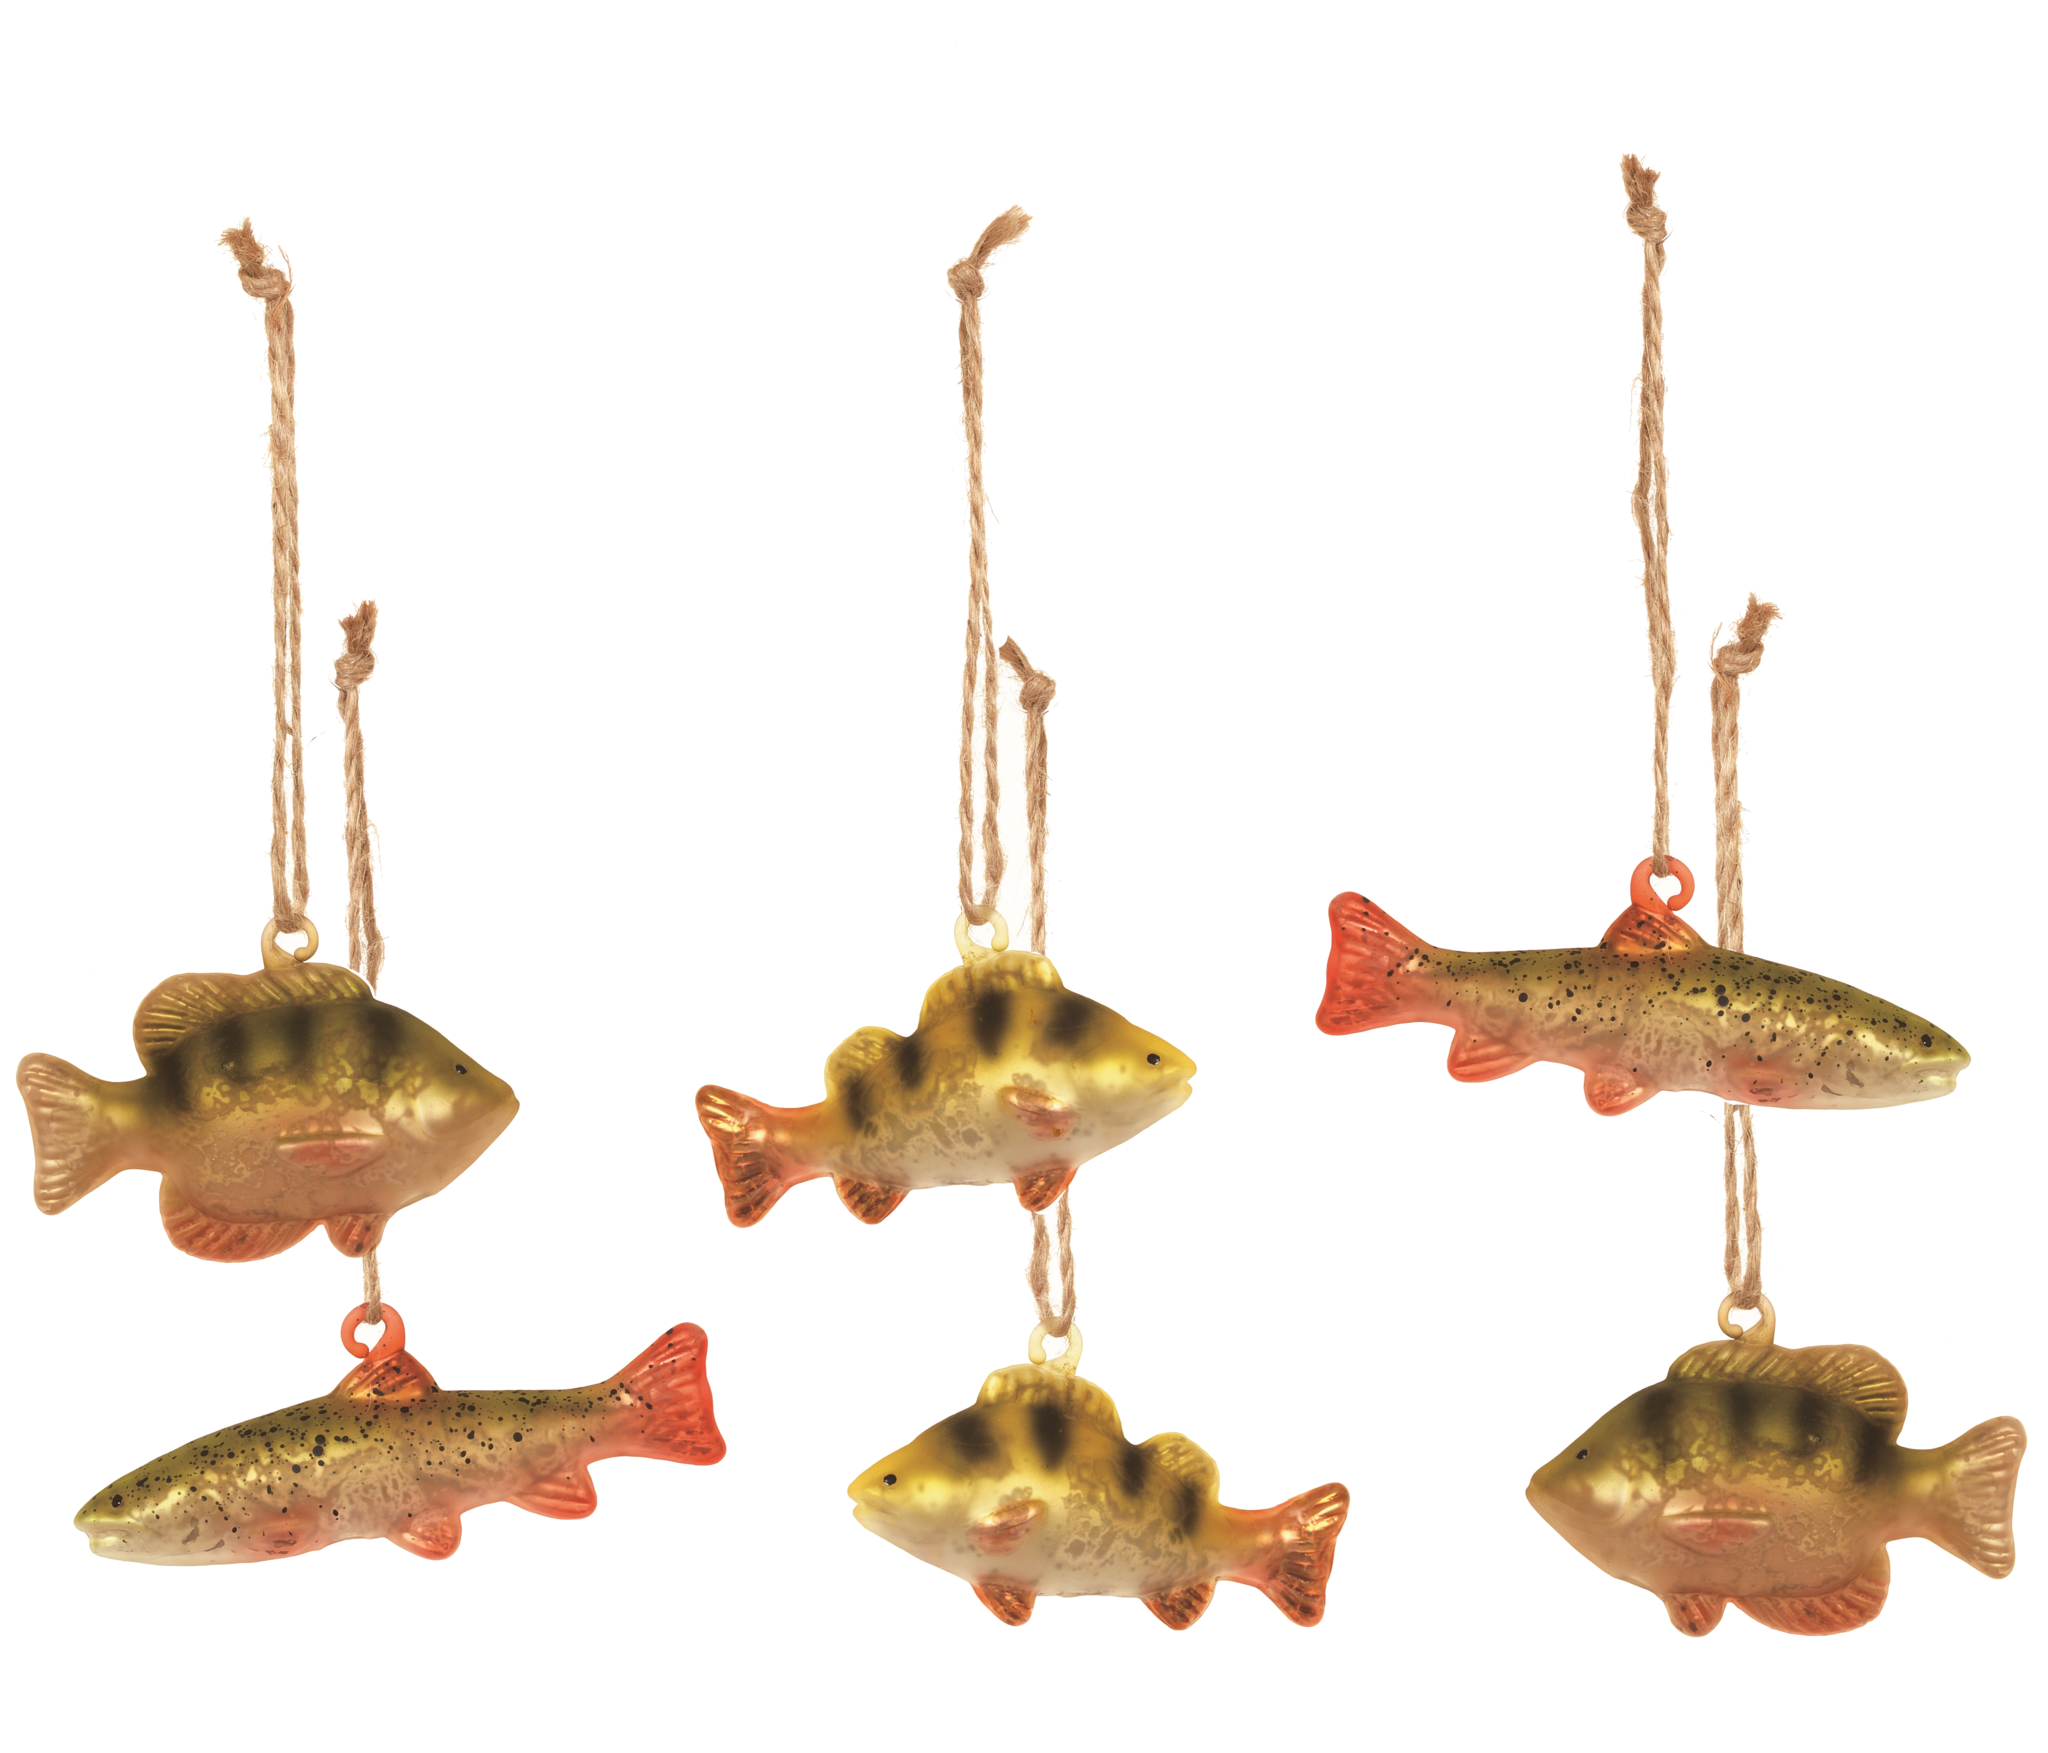 glass river fish christmas ornaments - Fish Christmas Ornaments